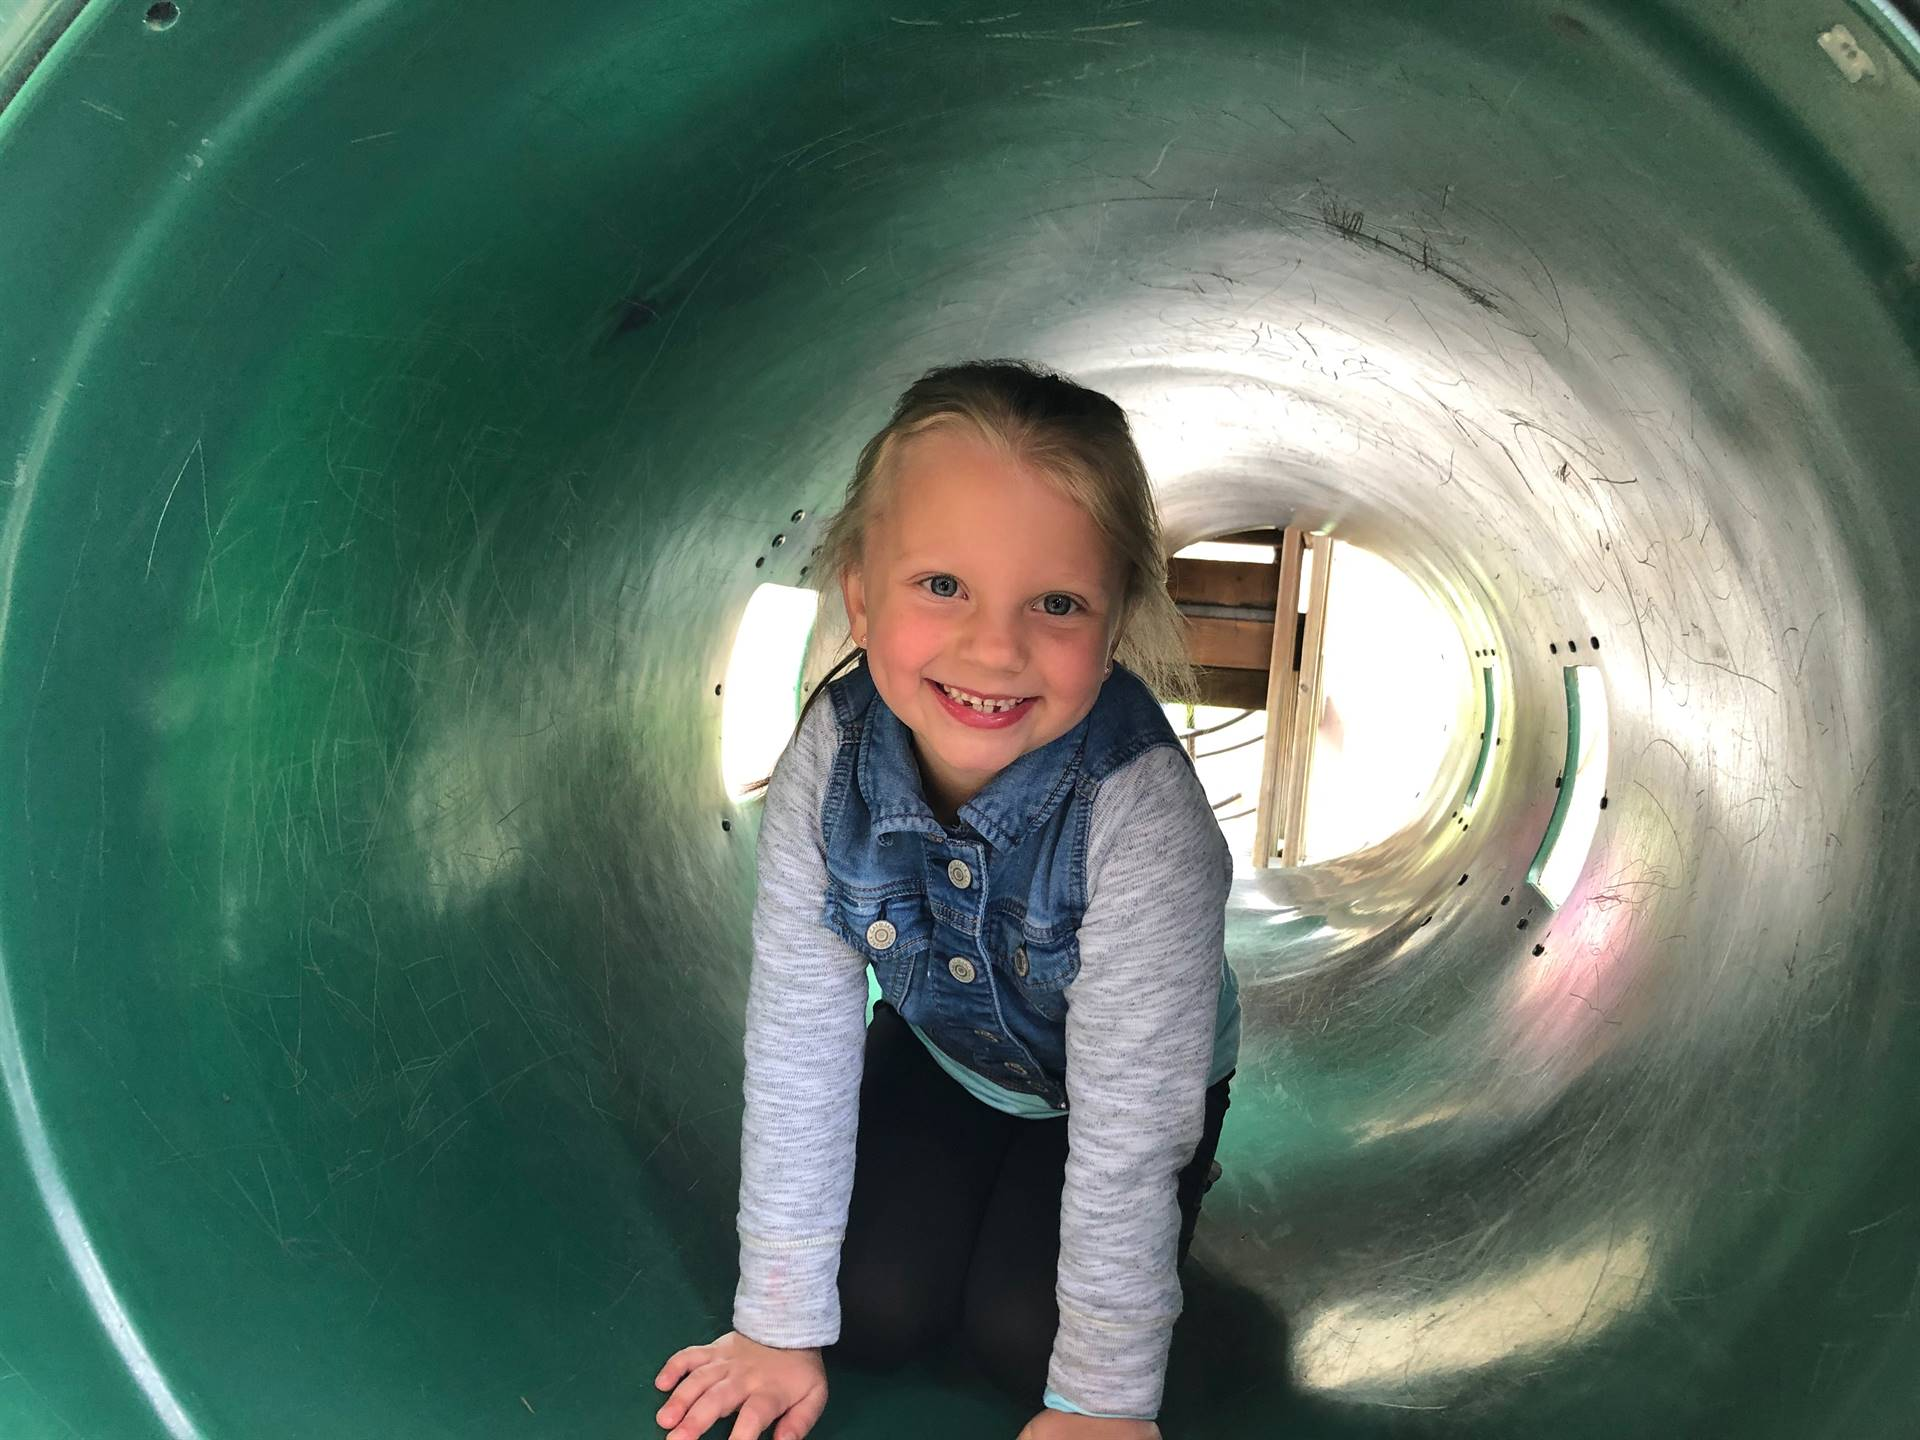 student posing in tunnel at a park